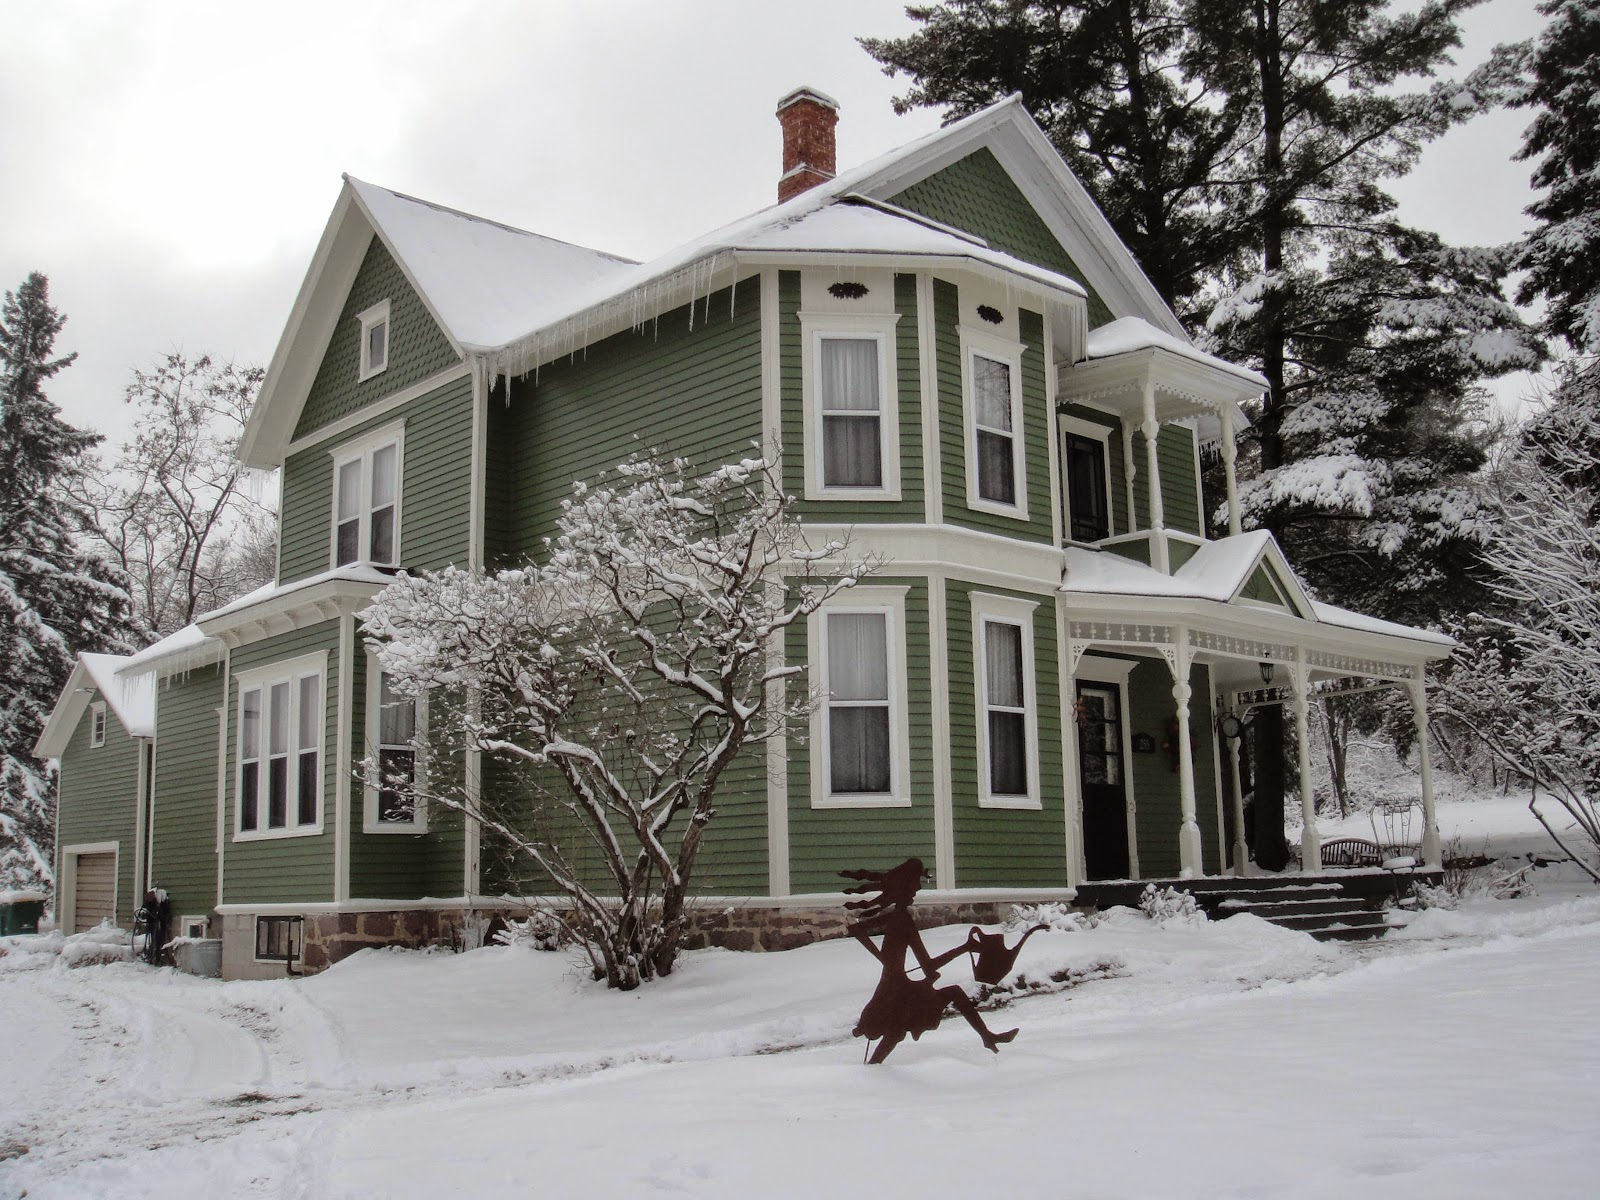 1893 Victorian Farmhouse Projects At The Old Victorian